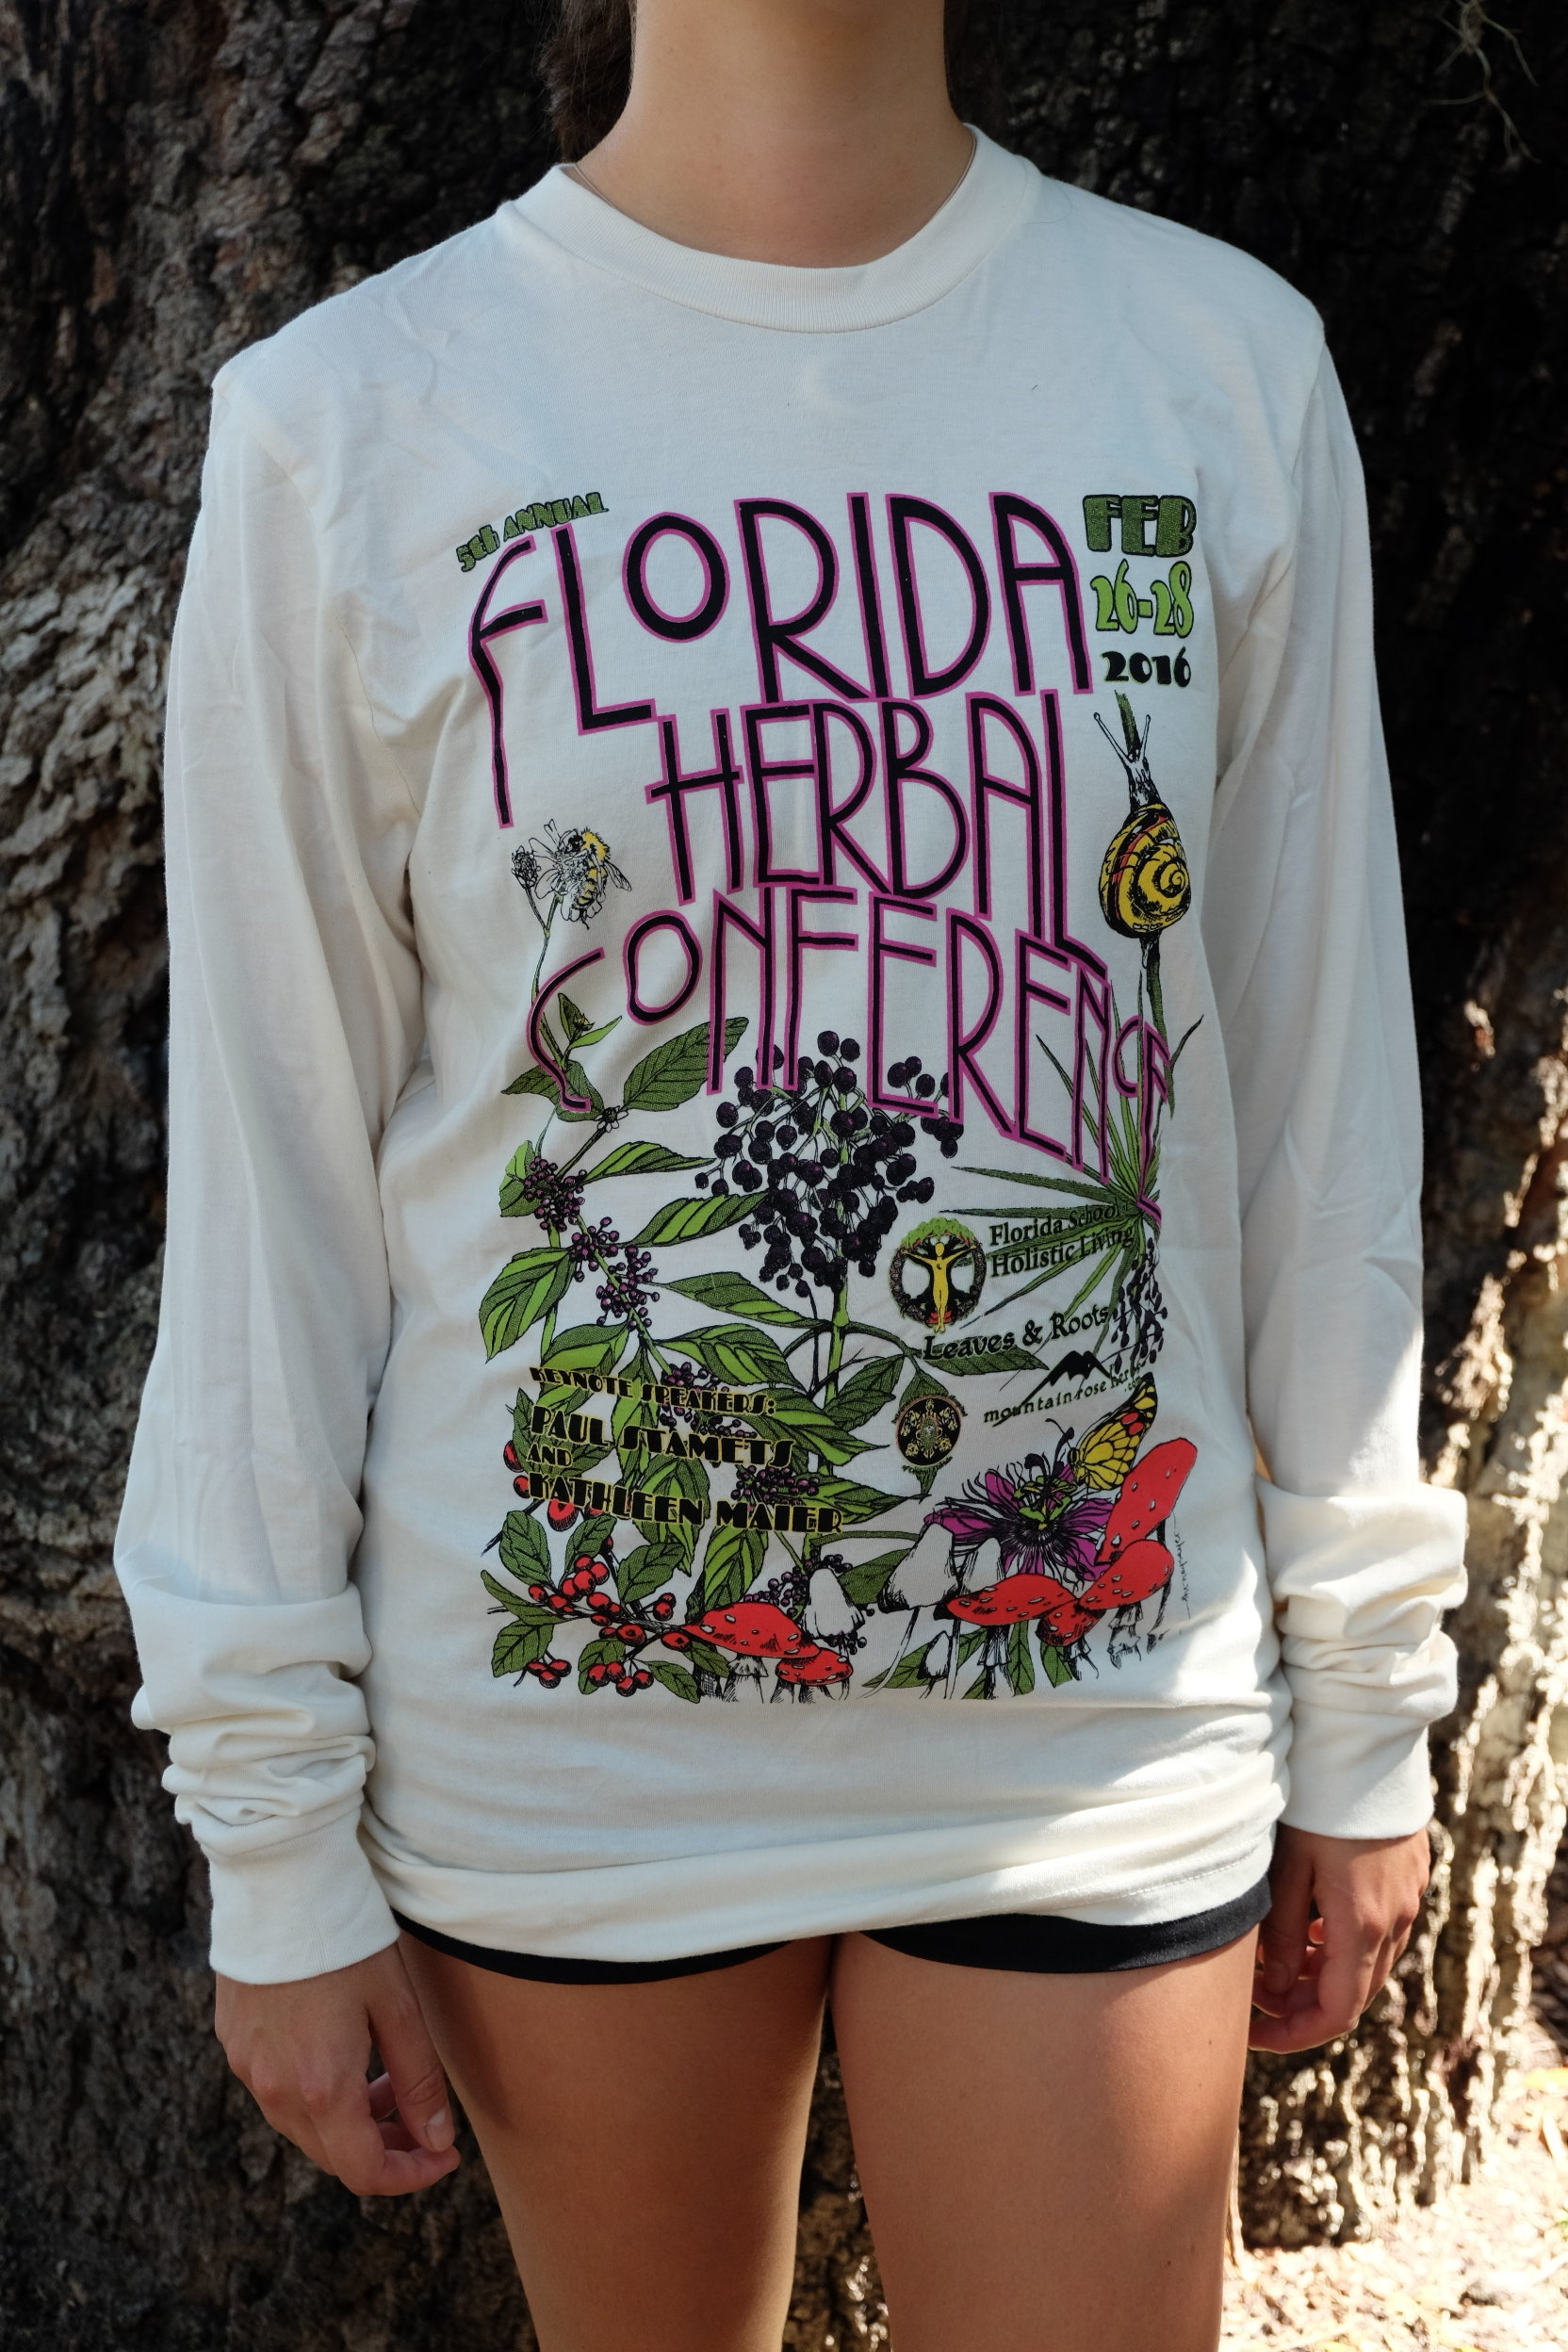 2016 Florida Herbal Conference Long Sleeved Tee 00028